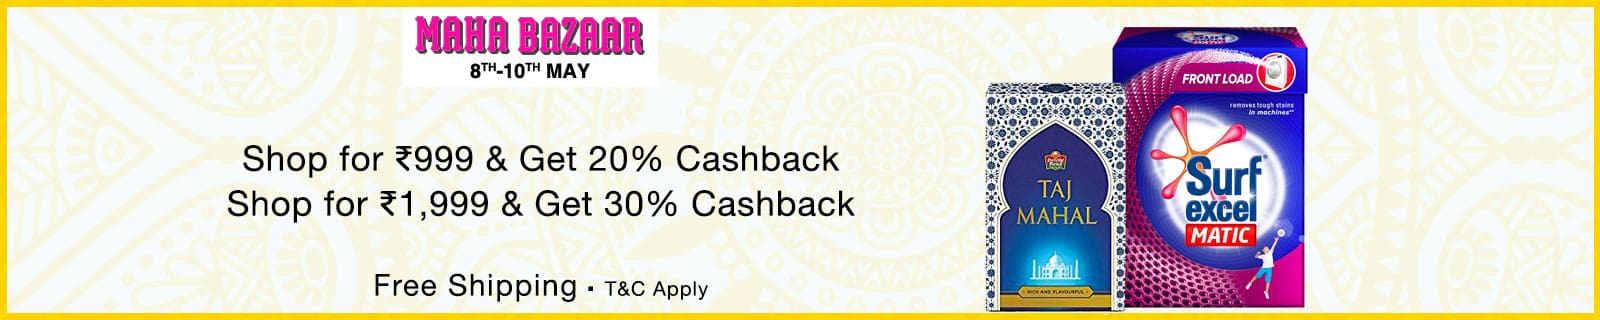 MAHA BAZAR 8TH-10TH MAY Shop for Rs 999 & Get 20% Cashback Shop for Rs 1,999 & Get 30% Cashback Free Shipping